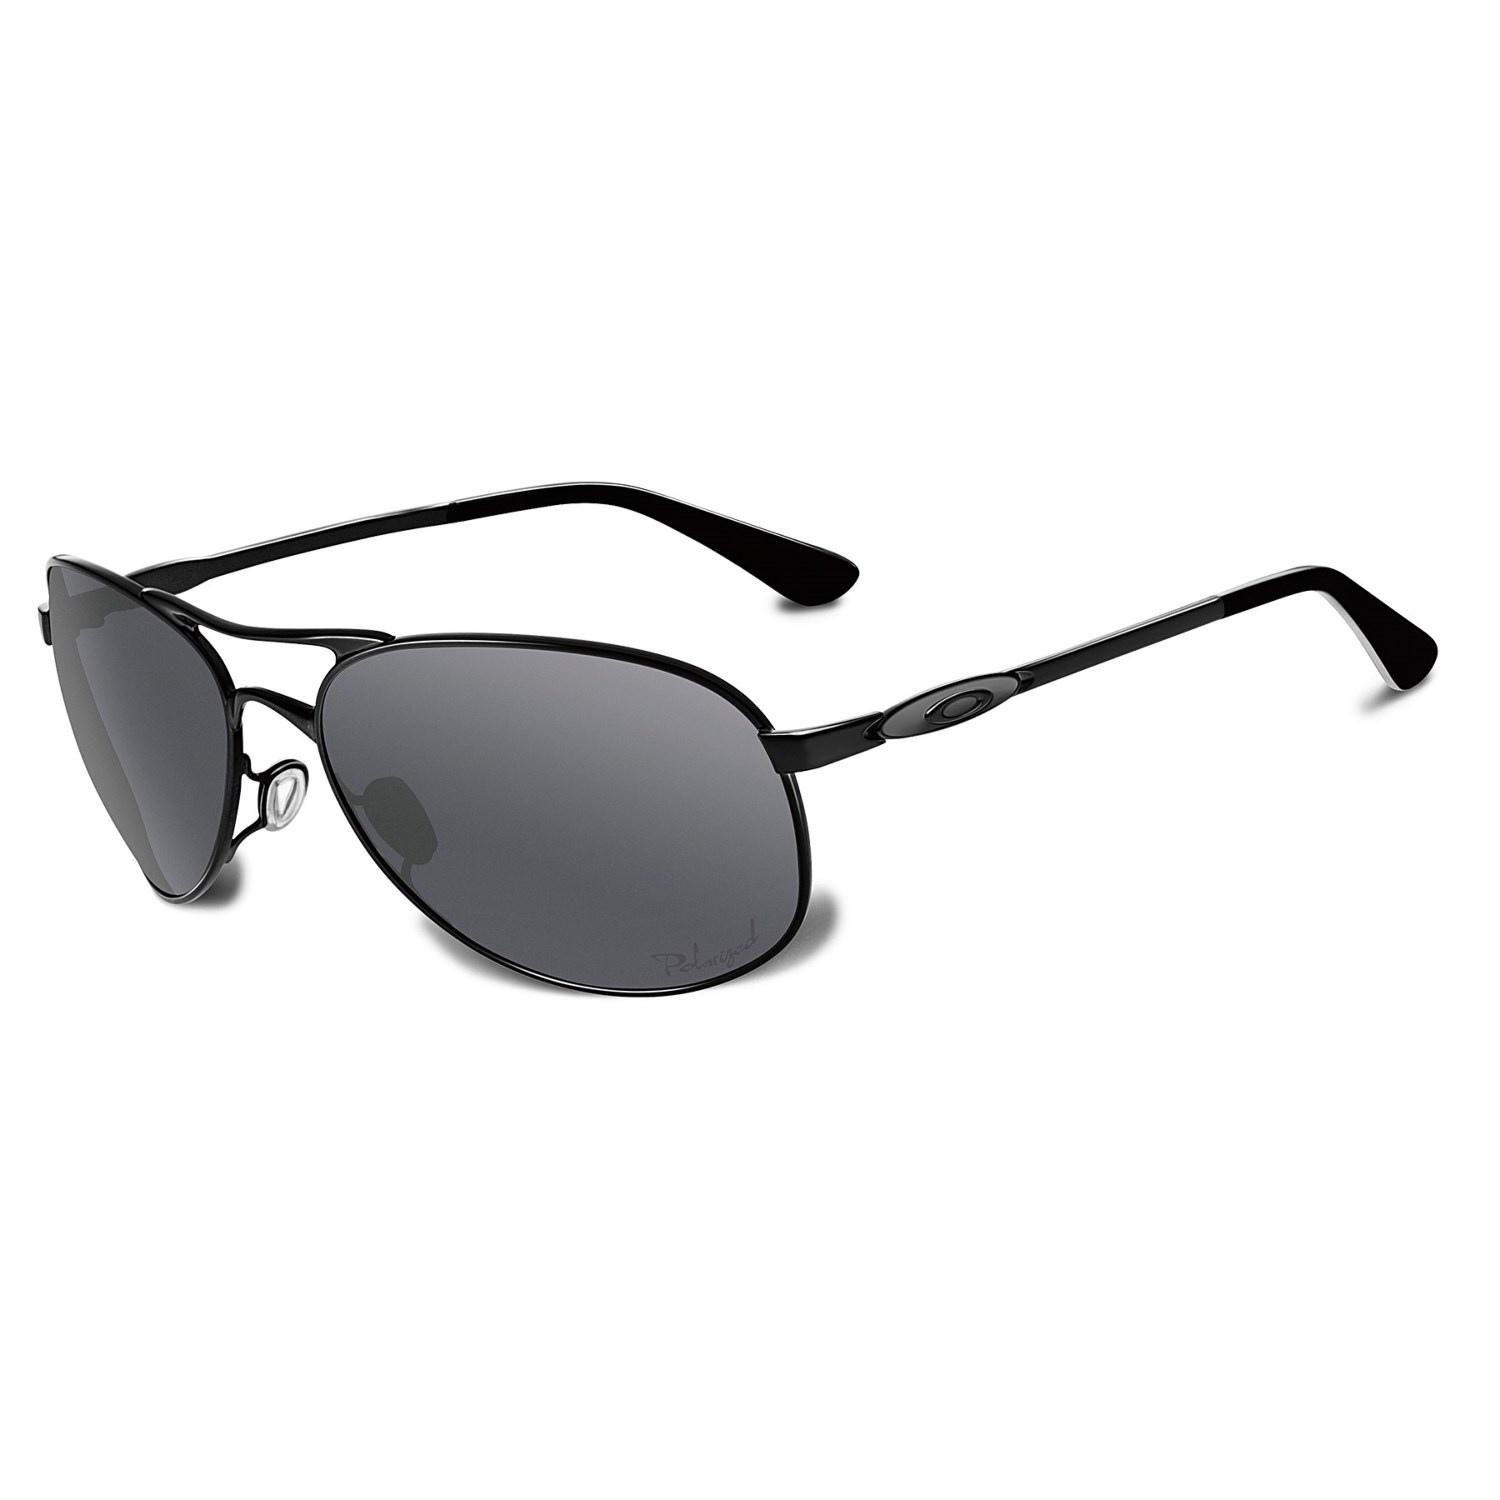 oakley black single women Shop readingglassescom for the best selection of designer readers, bifocals, progressive no line readers & reading sunglasses for both women .